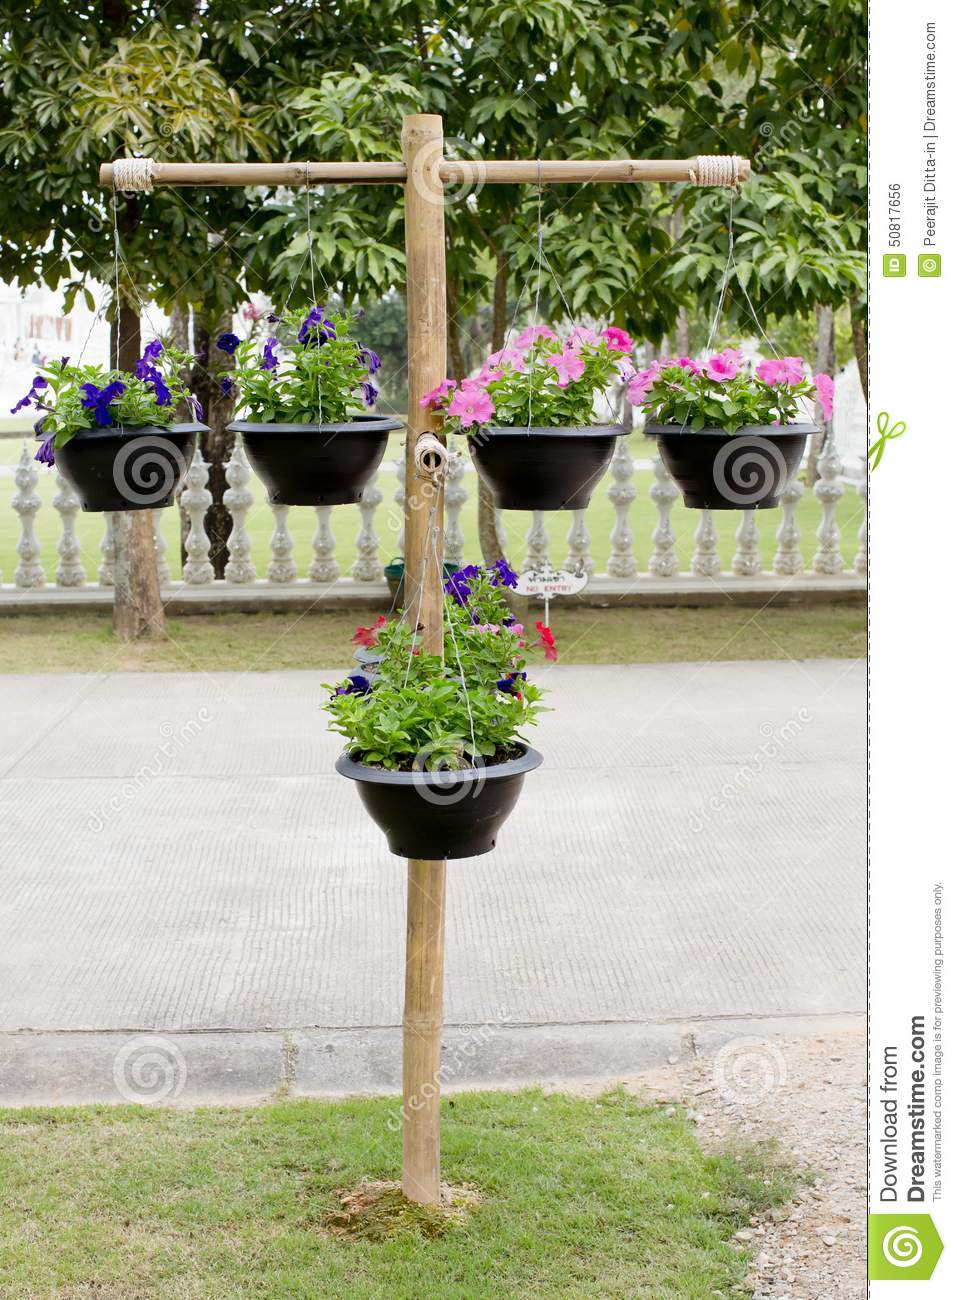 Pot Stand Designs : Wood stand with pots of flowers stock photo image